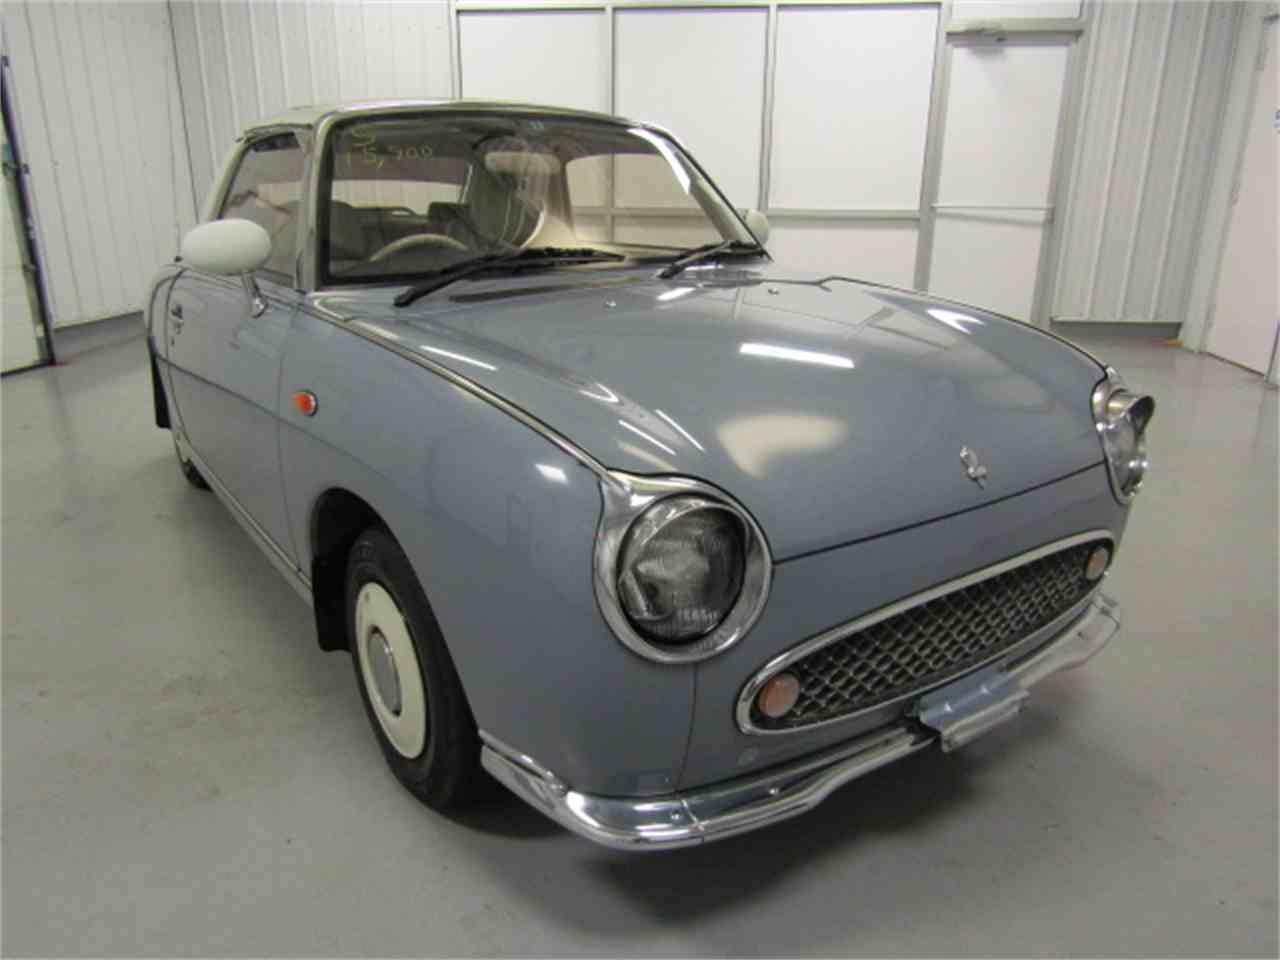 Large Picture of '91 Nissan Figaro - $17,900.00 Offered by Duncan Imports & Classic Cars - JL8M